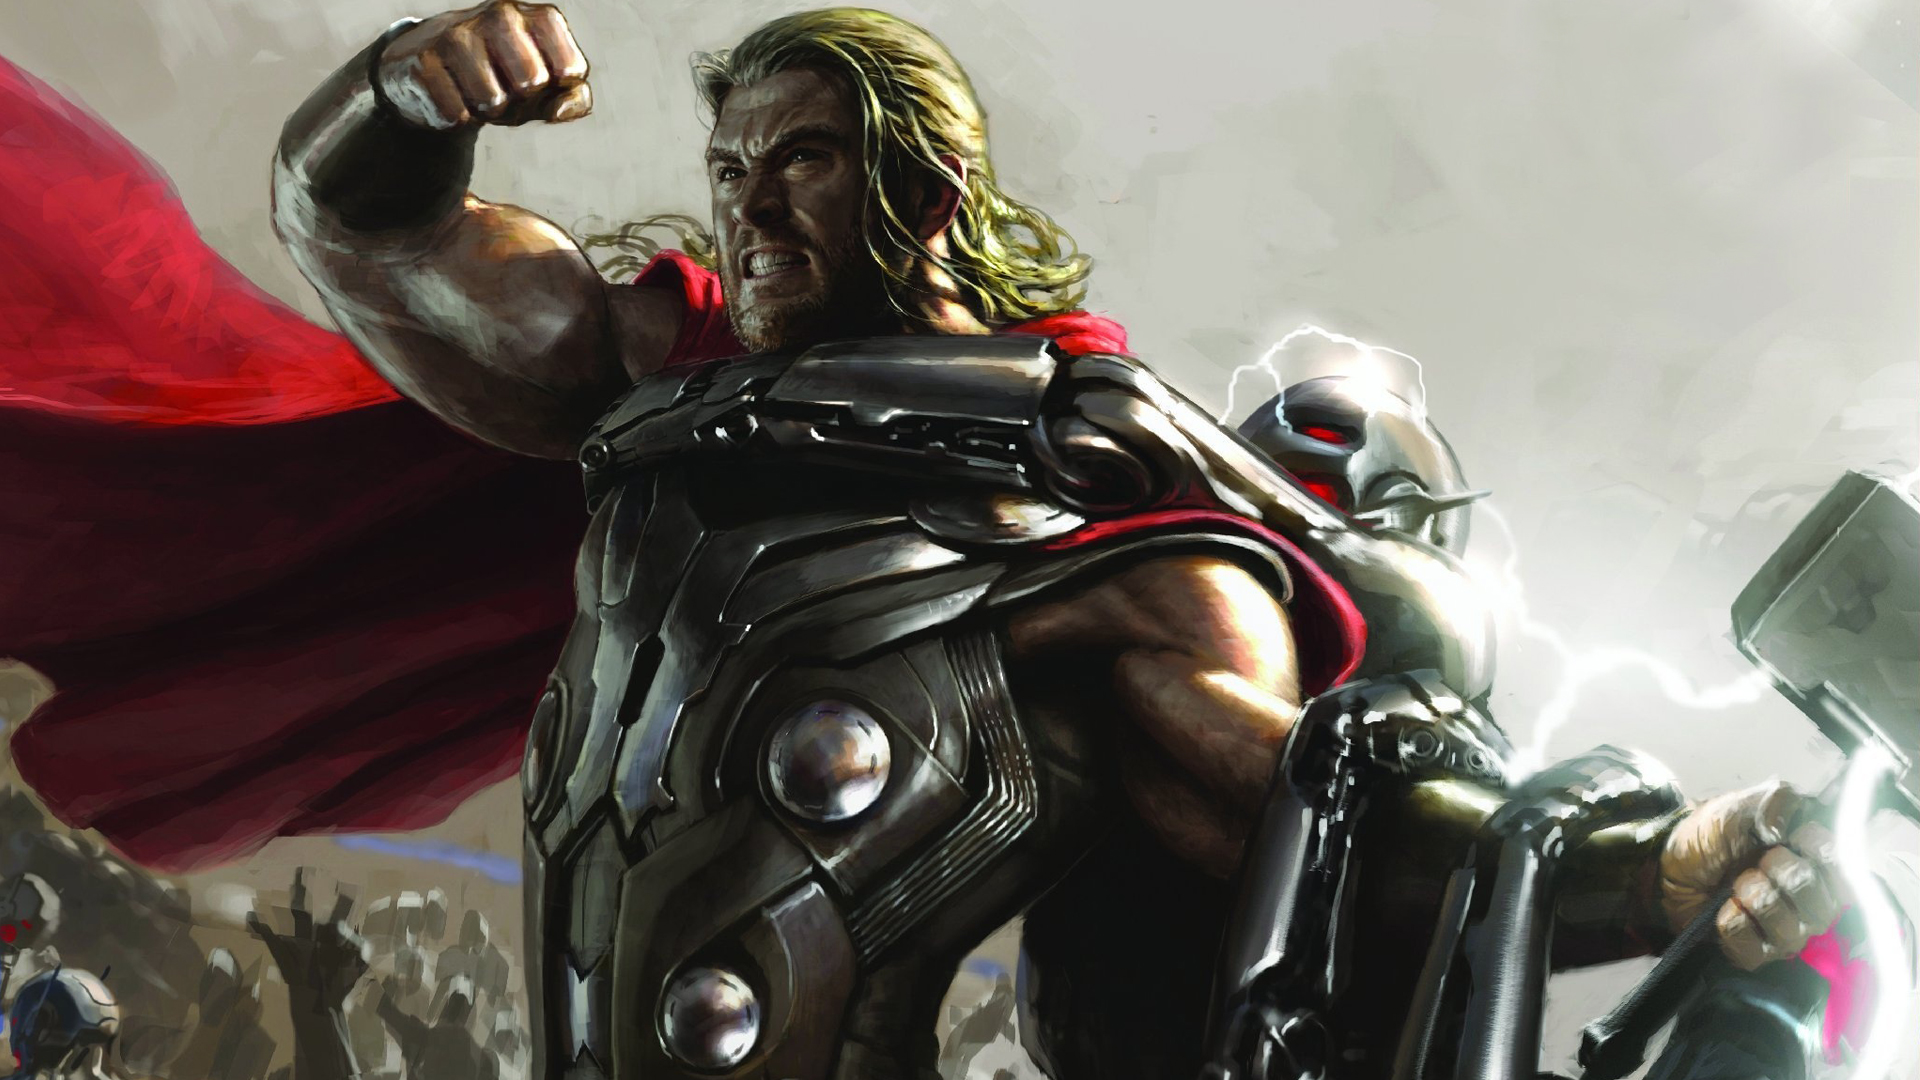 Thor Avengers Age of Ultron Wallpapers HD Wallpapers 1920x1080